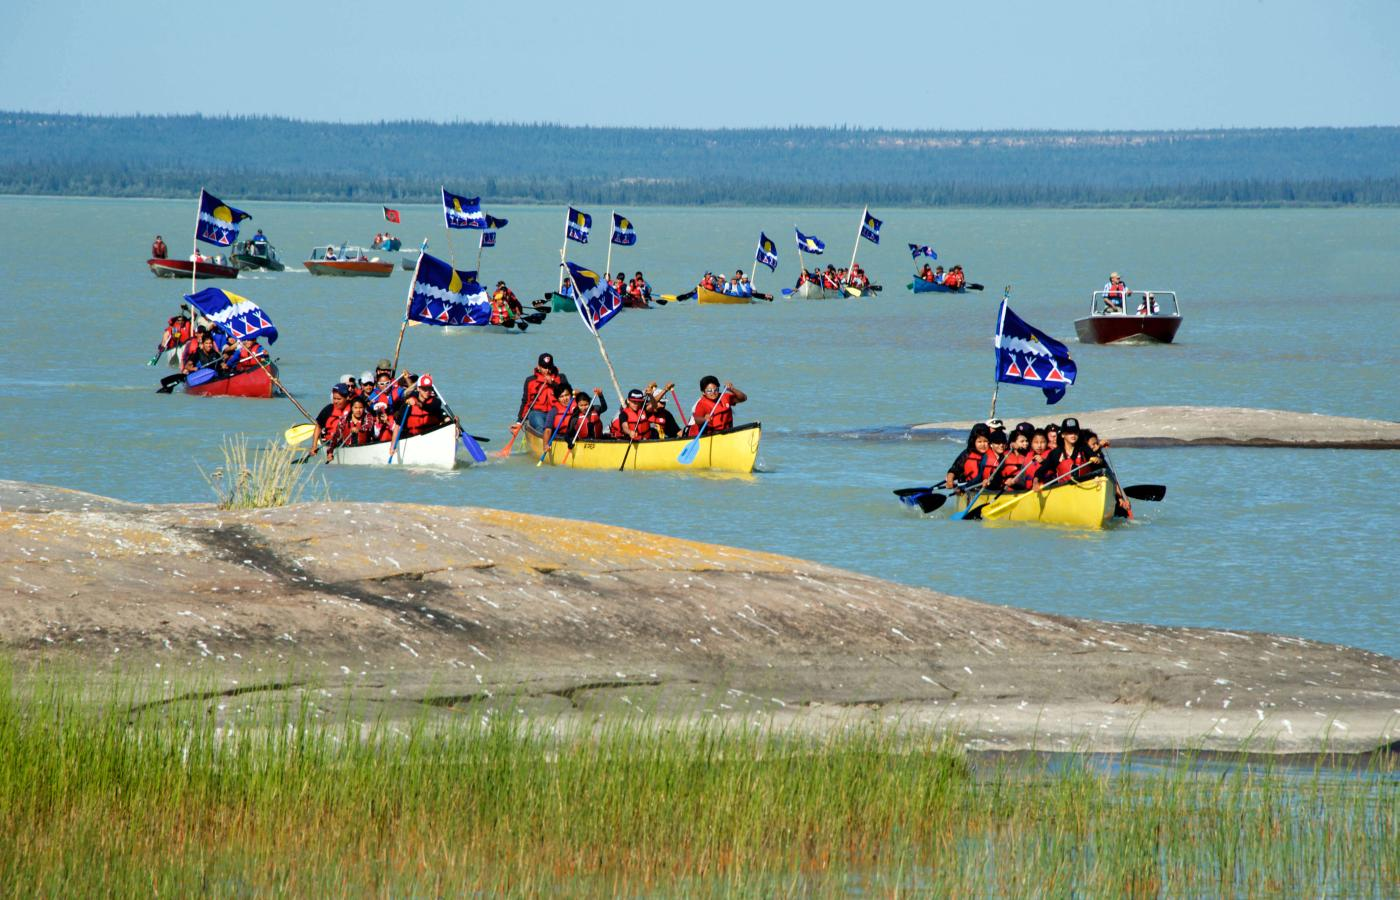 Canoes in the water near Behchokǫ̀